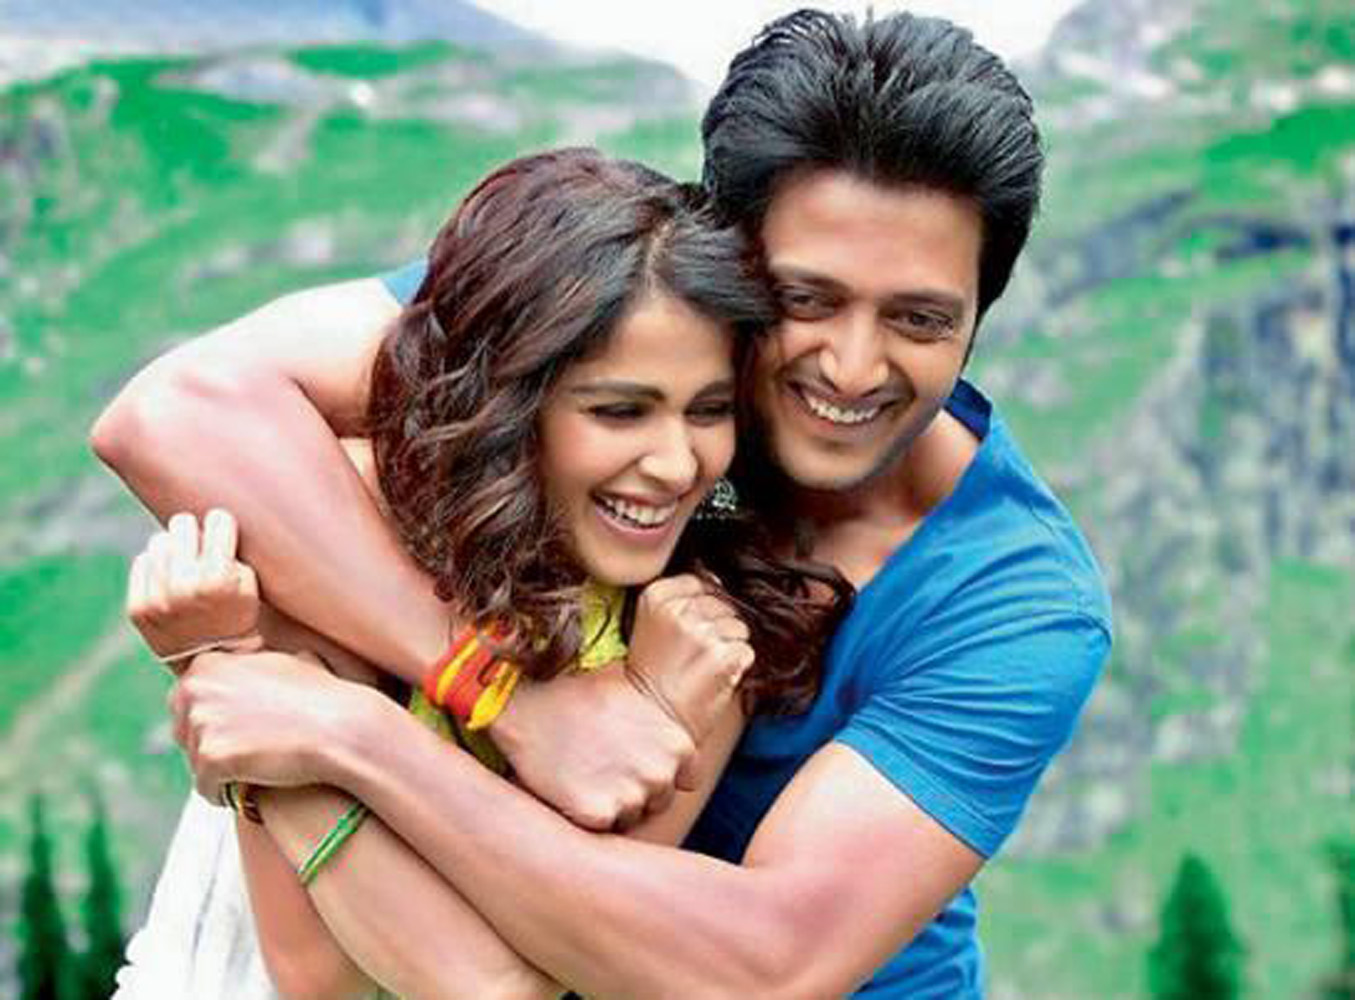 http://onlookersmedia.in/wp-content/uploads/2015/05/Riteish-Deshmukh-Genelia-Family-Stills-Images-Photos-Bollywood-Movie-Onlookers-Media-4.jpg